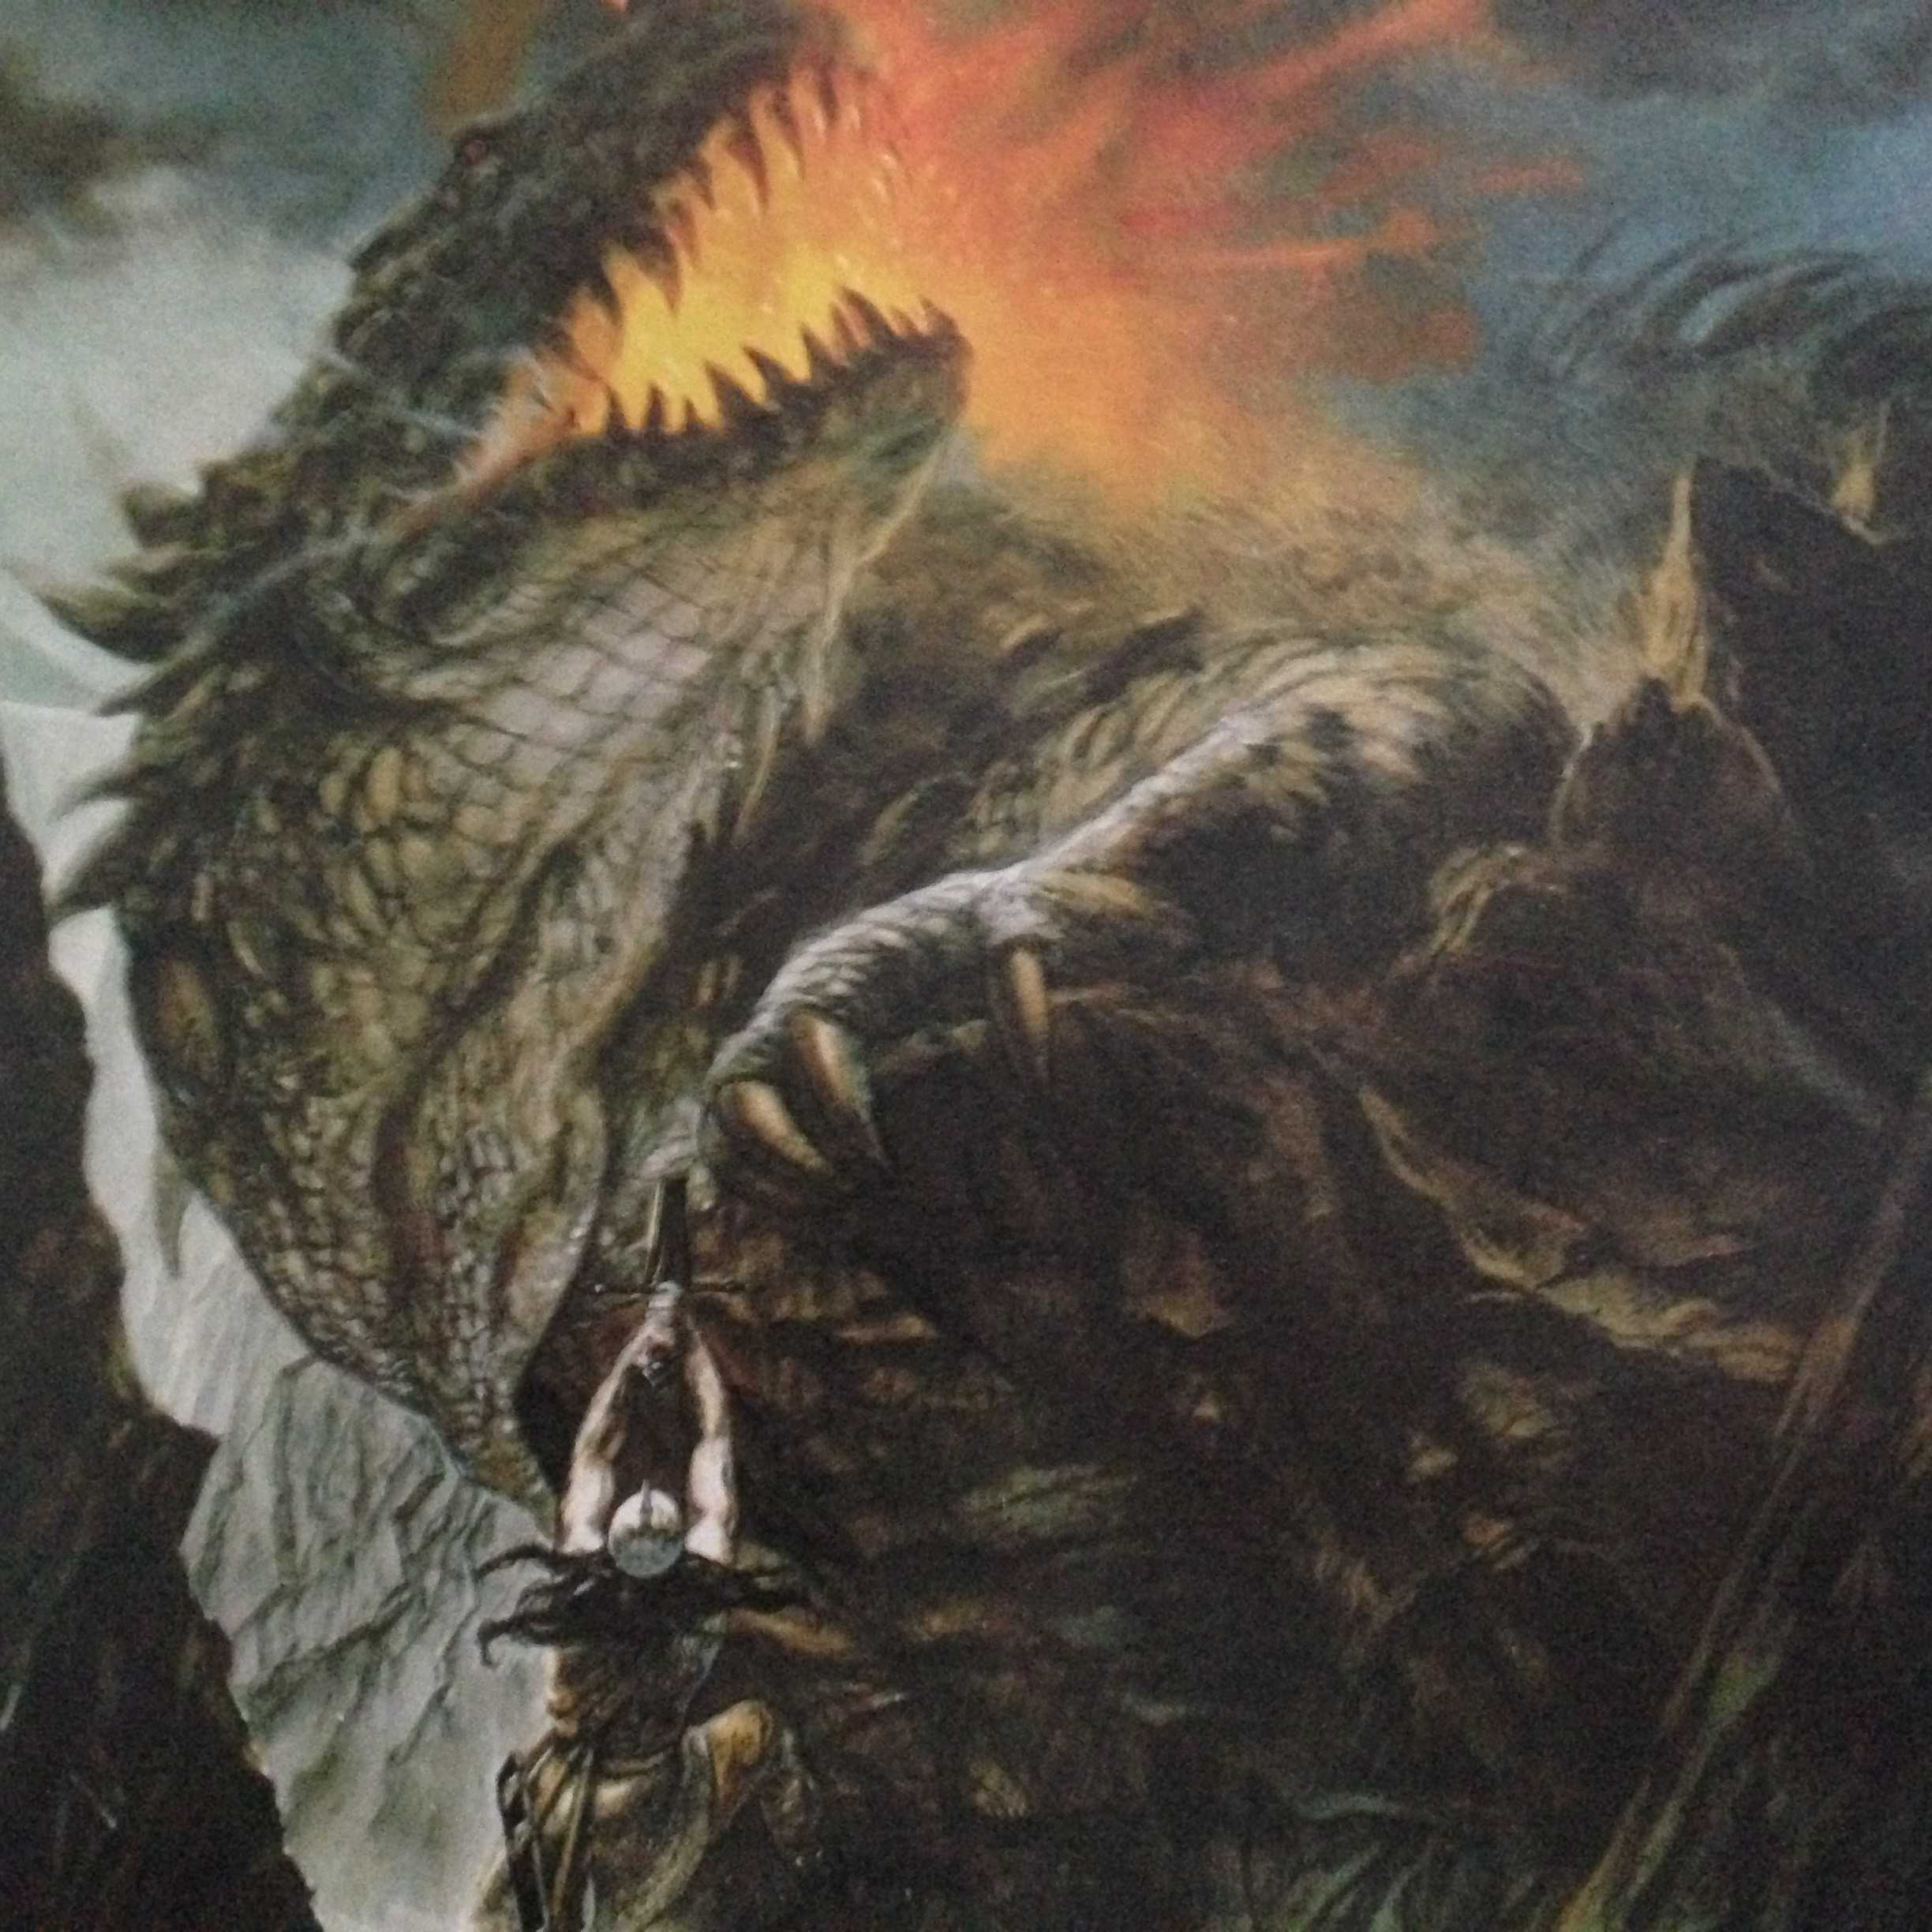 Turambar and Glorund, The Book of Lost Tales, Volume 2 By John Howe